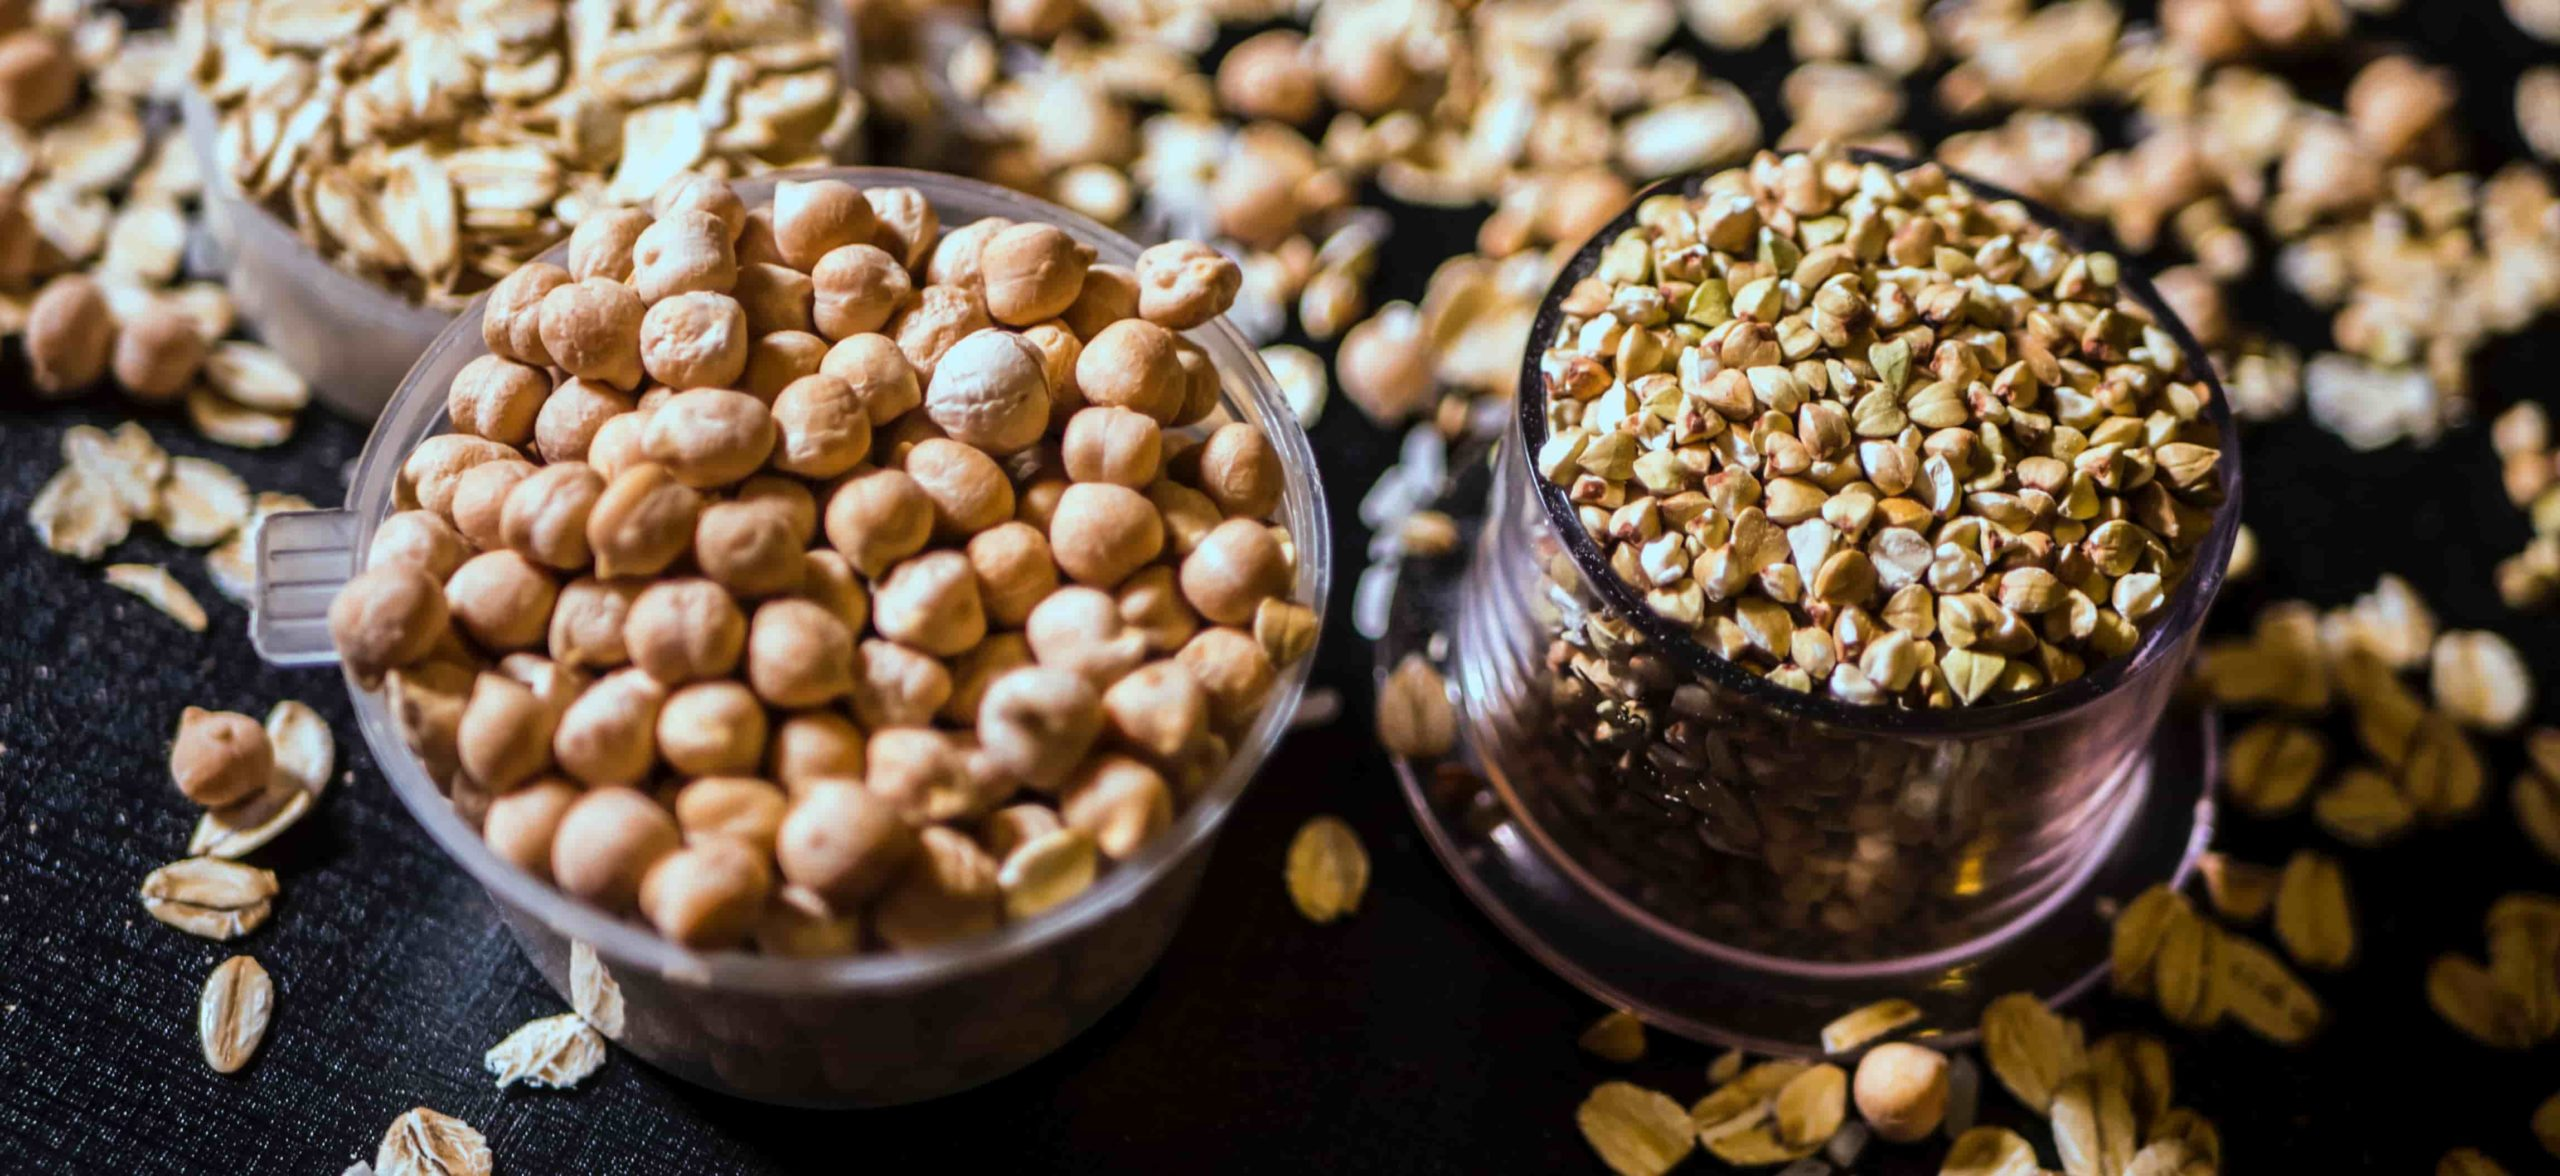 Are oats overrated?